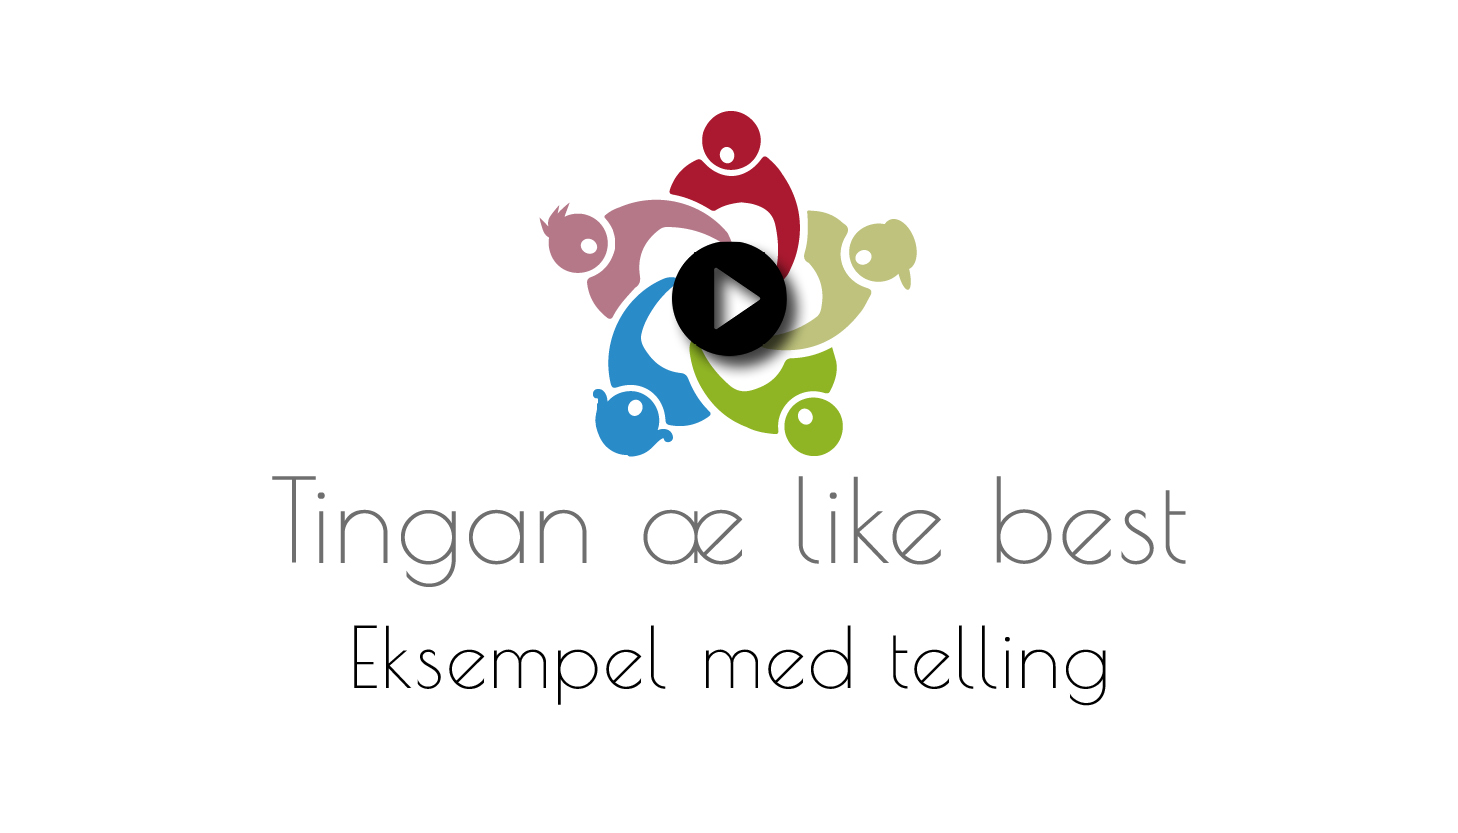 SSD Logo video Tingan æ like best Eksempel med telling.jpg